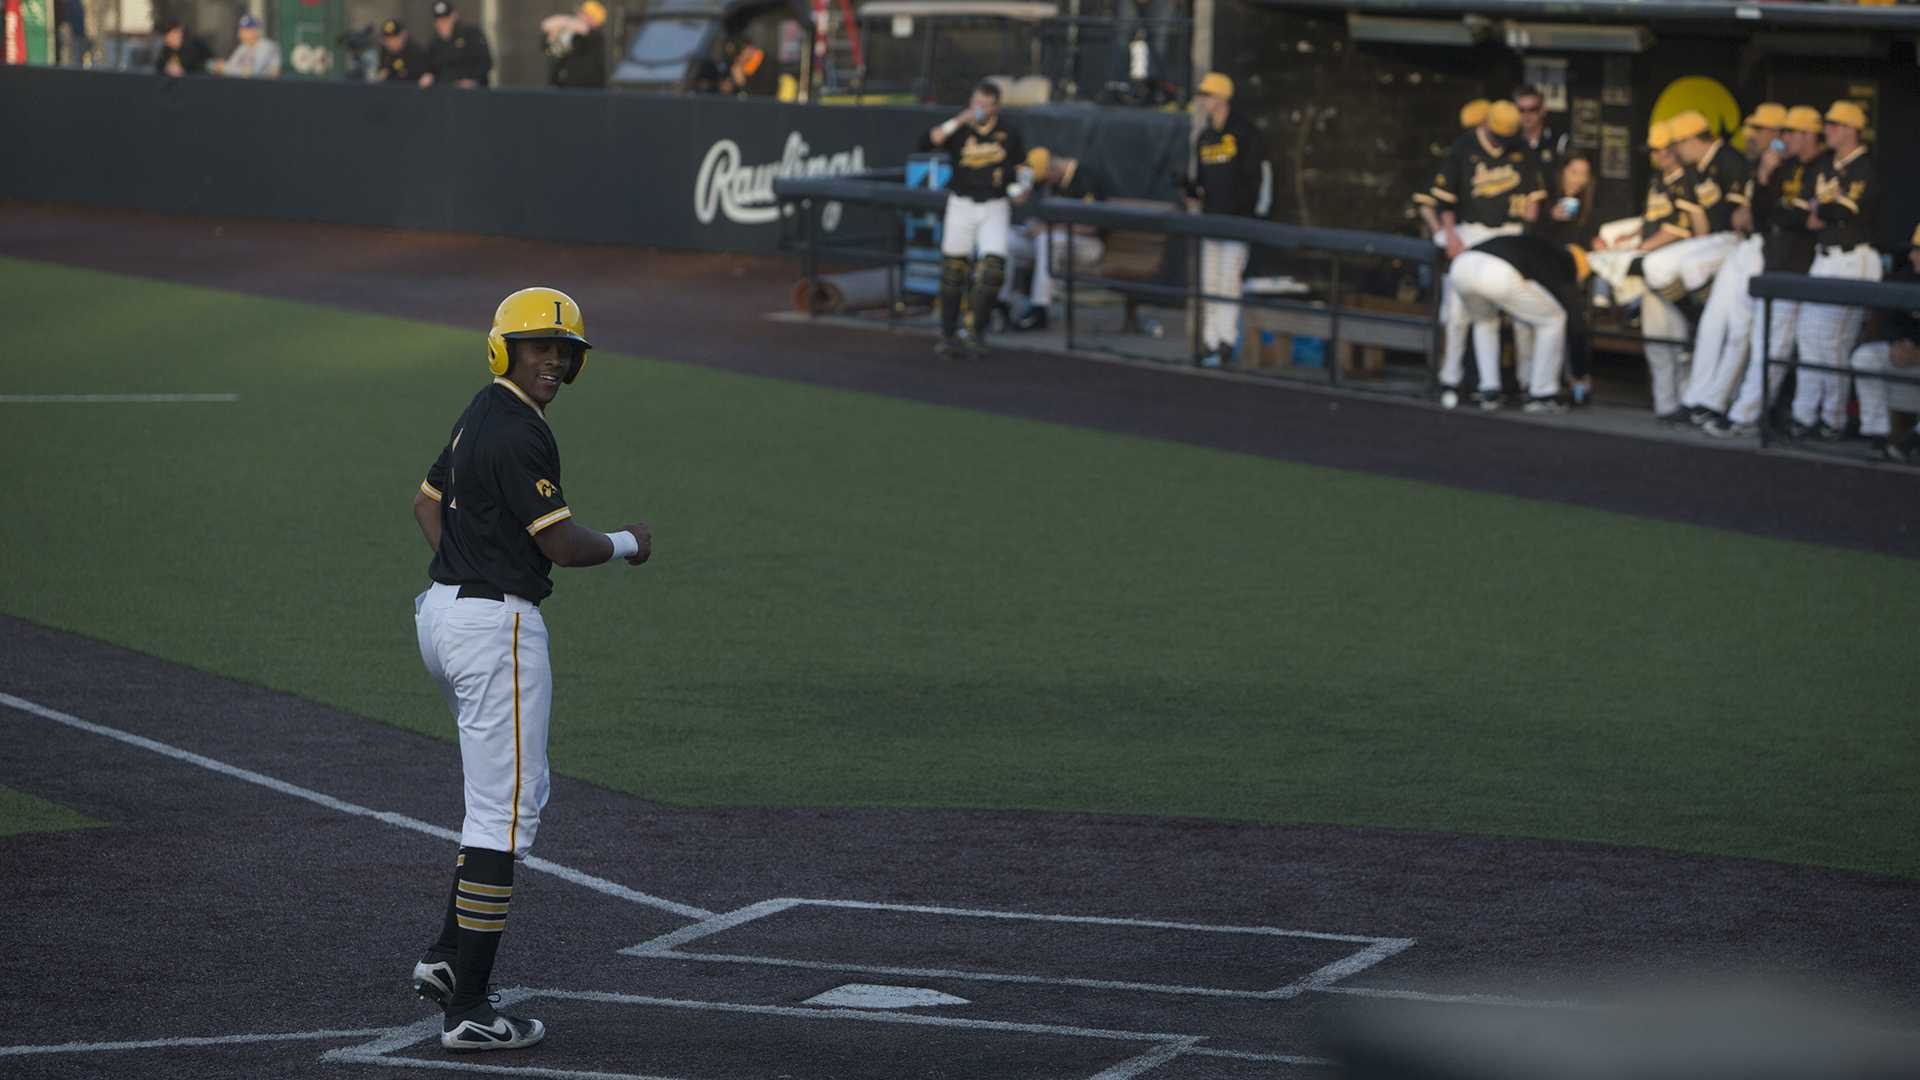 Hawkeye infielder, Sophomore Lorenzo Elion, leisurely runs home during the eight run streak of the third inning during Men's Baseball at Duane Banks Fields on Wednesday Apr. 25, 2018. The Hawkeyes defeated the Panthers 12-4. (Katie Goodale/The Daily Iowan)